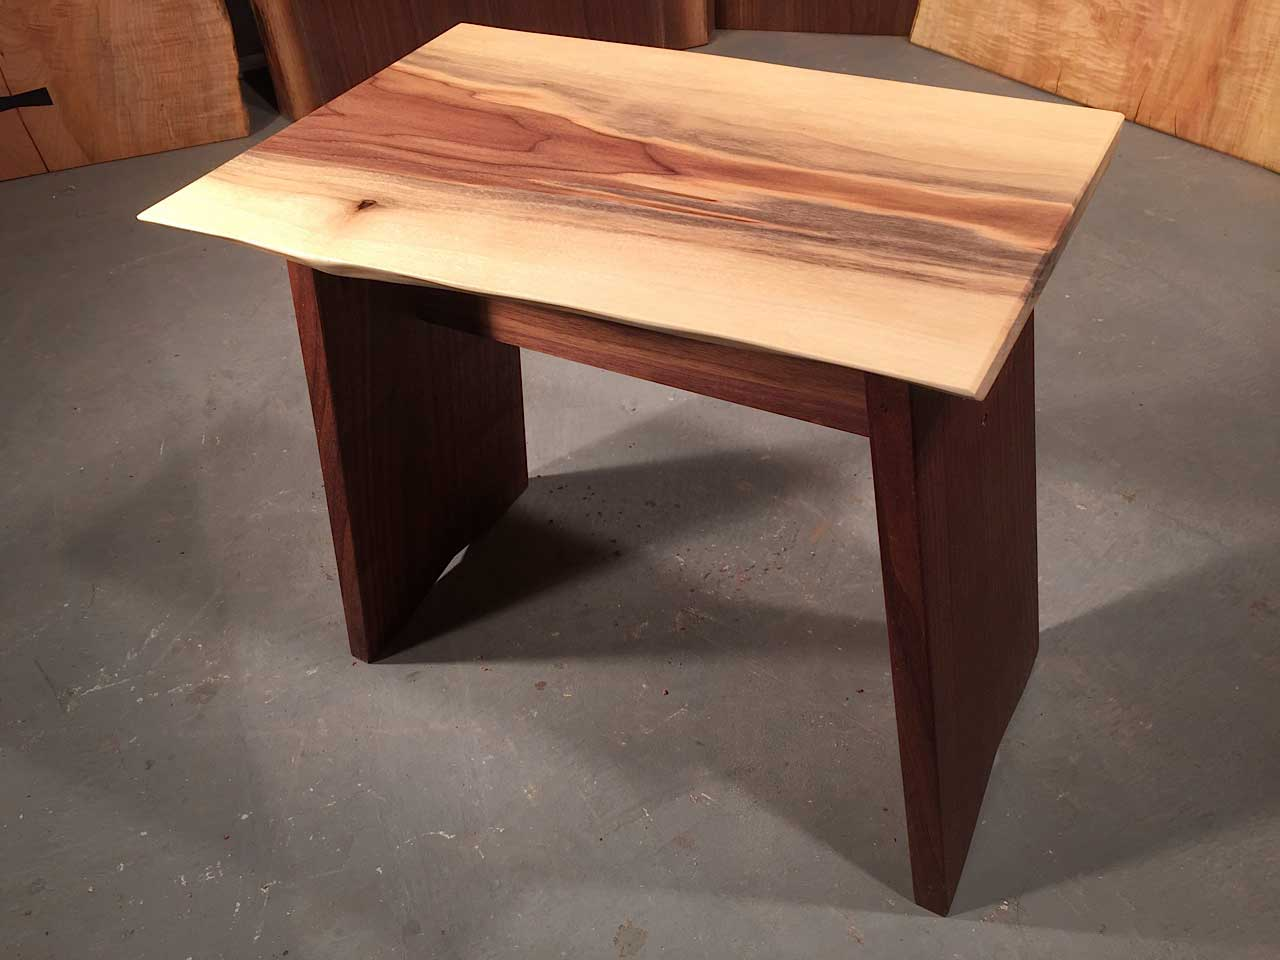 Walnut Live Edge Top With Solid Walnut Legs